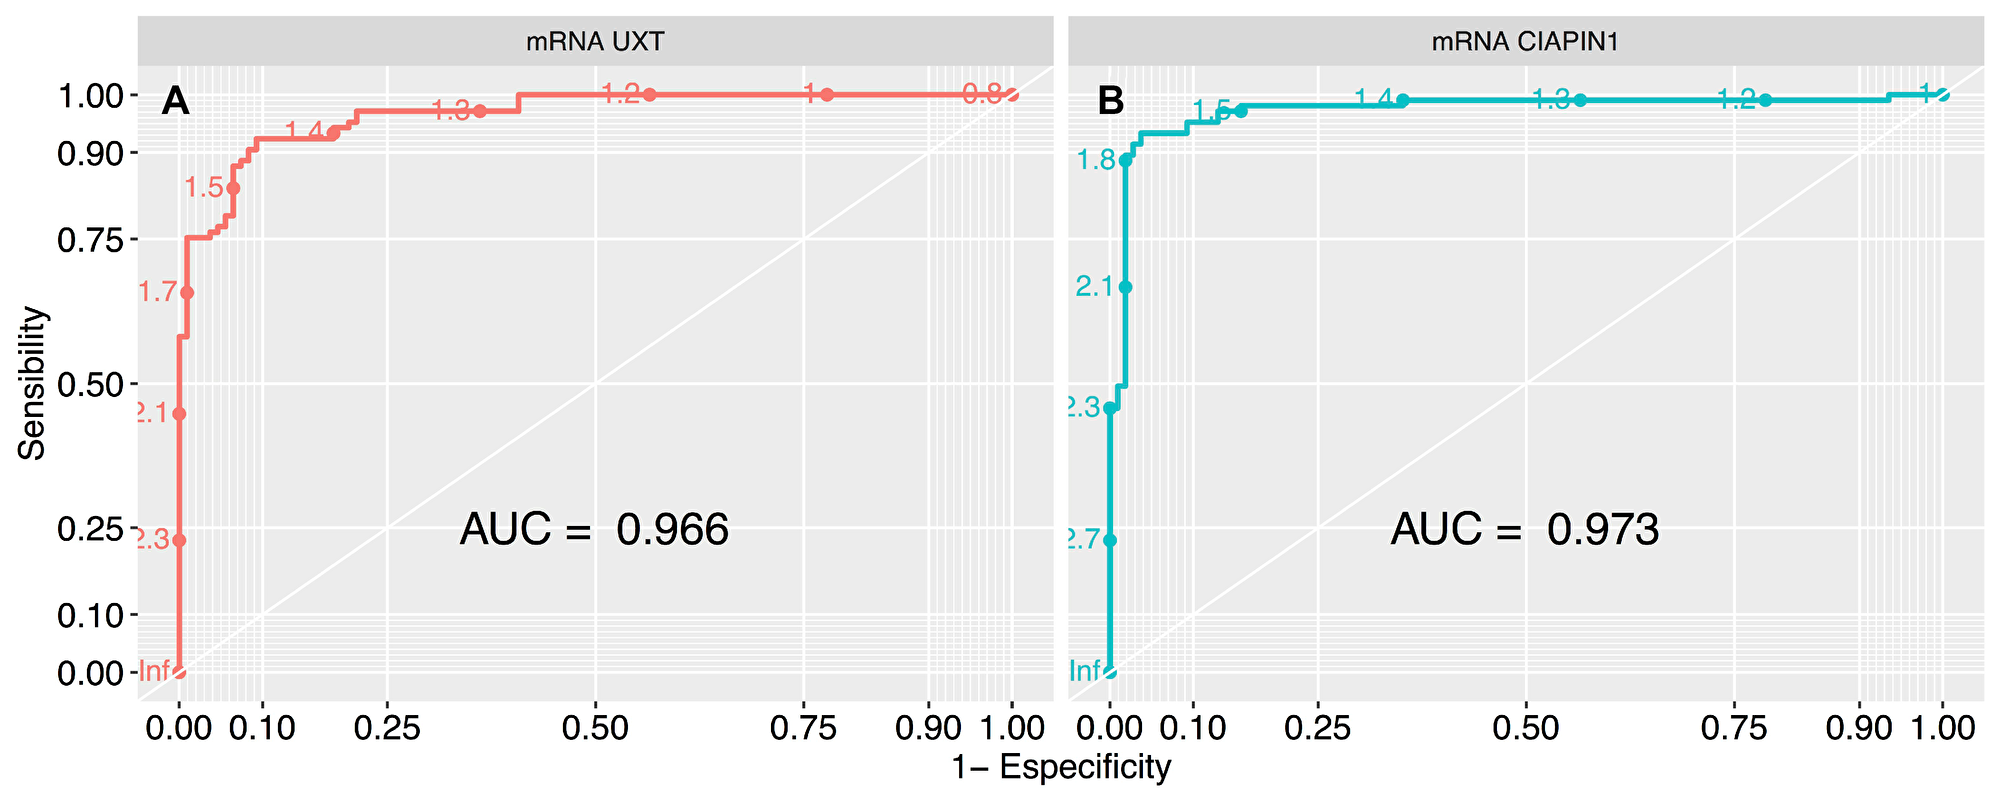 ROC curve analysis to define the cut-off values of UXT and CIAPIN1 gene expression, segregating the high and low expression groups.